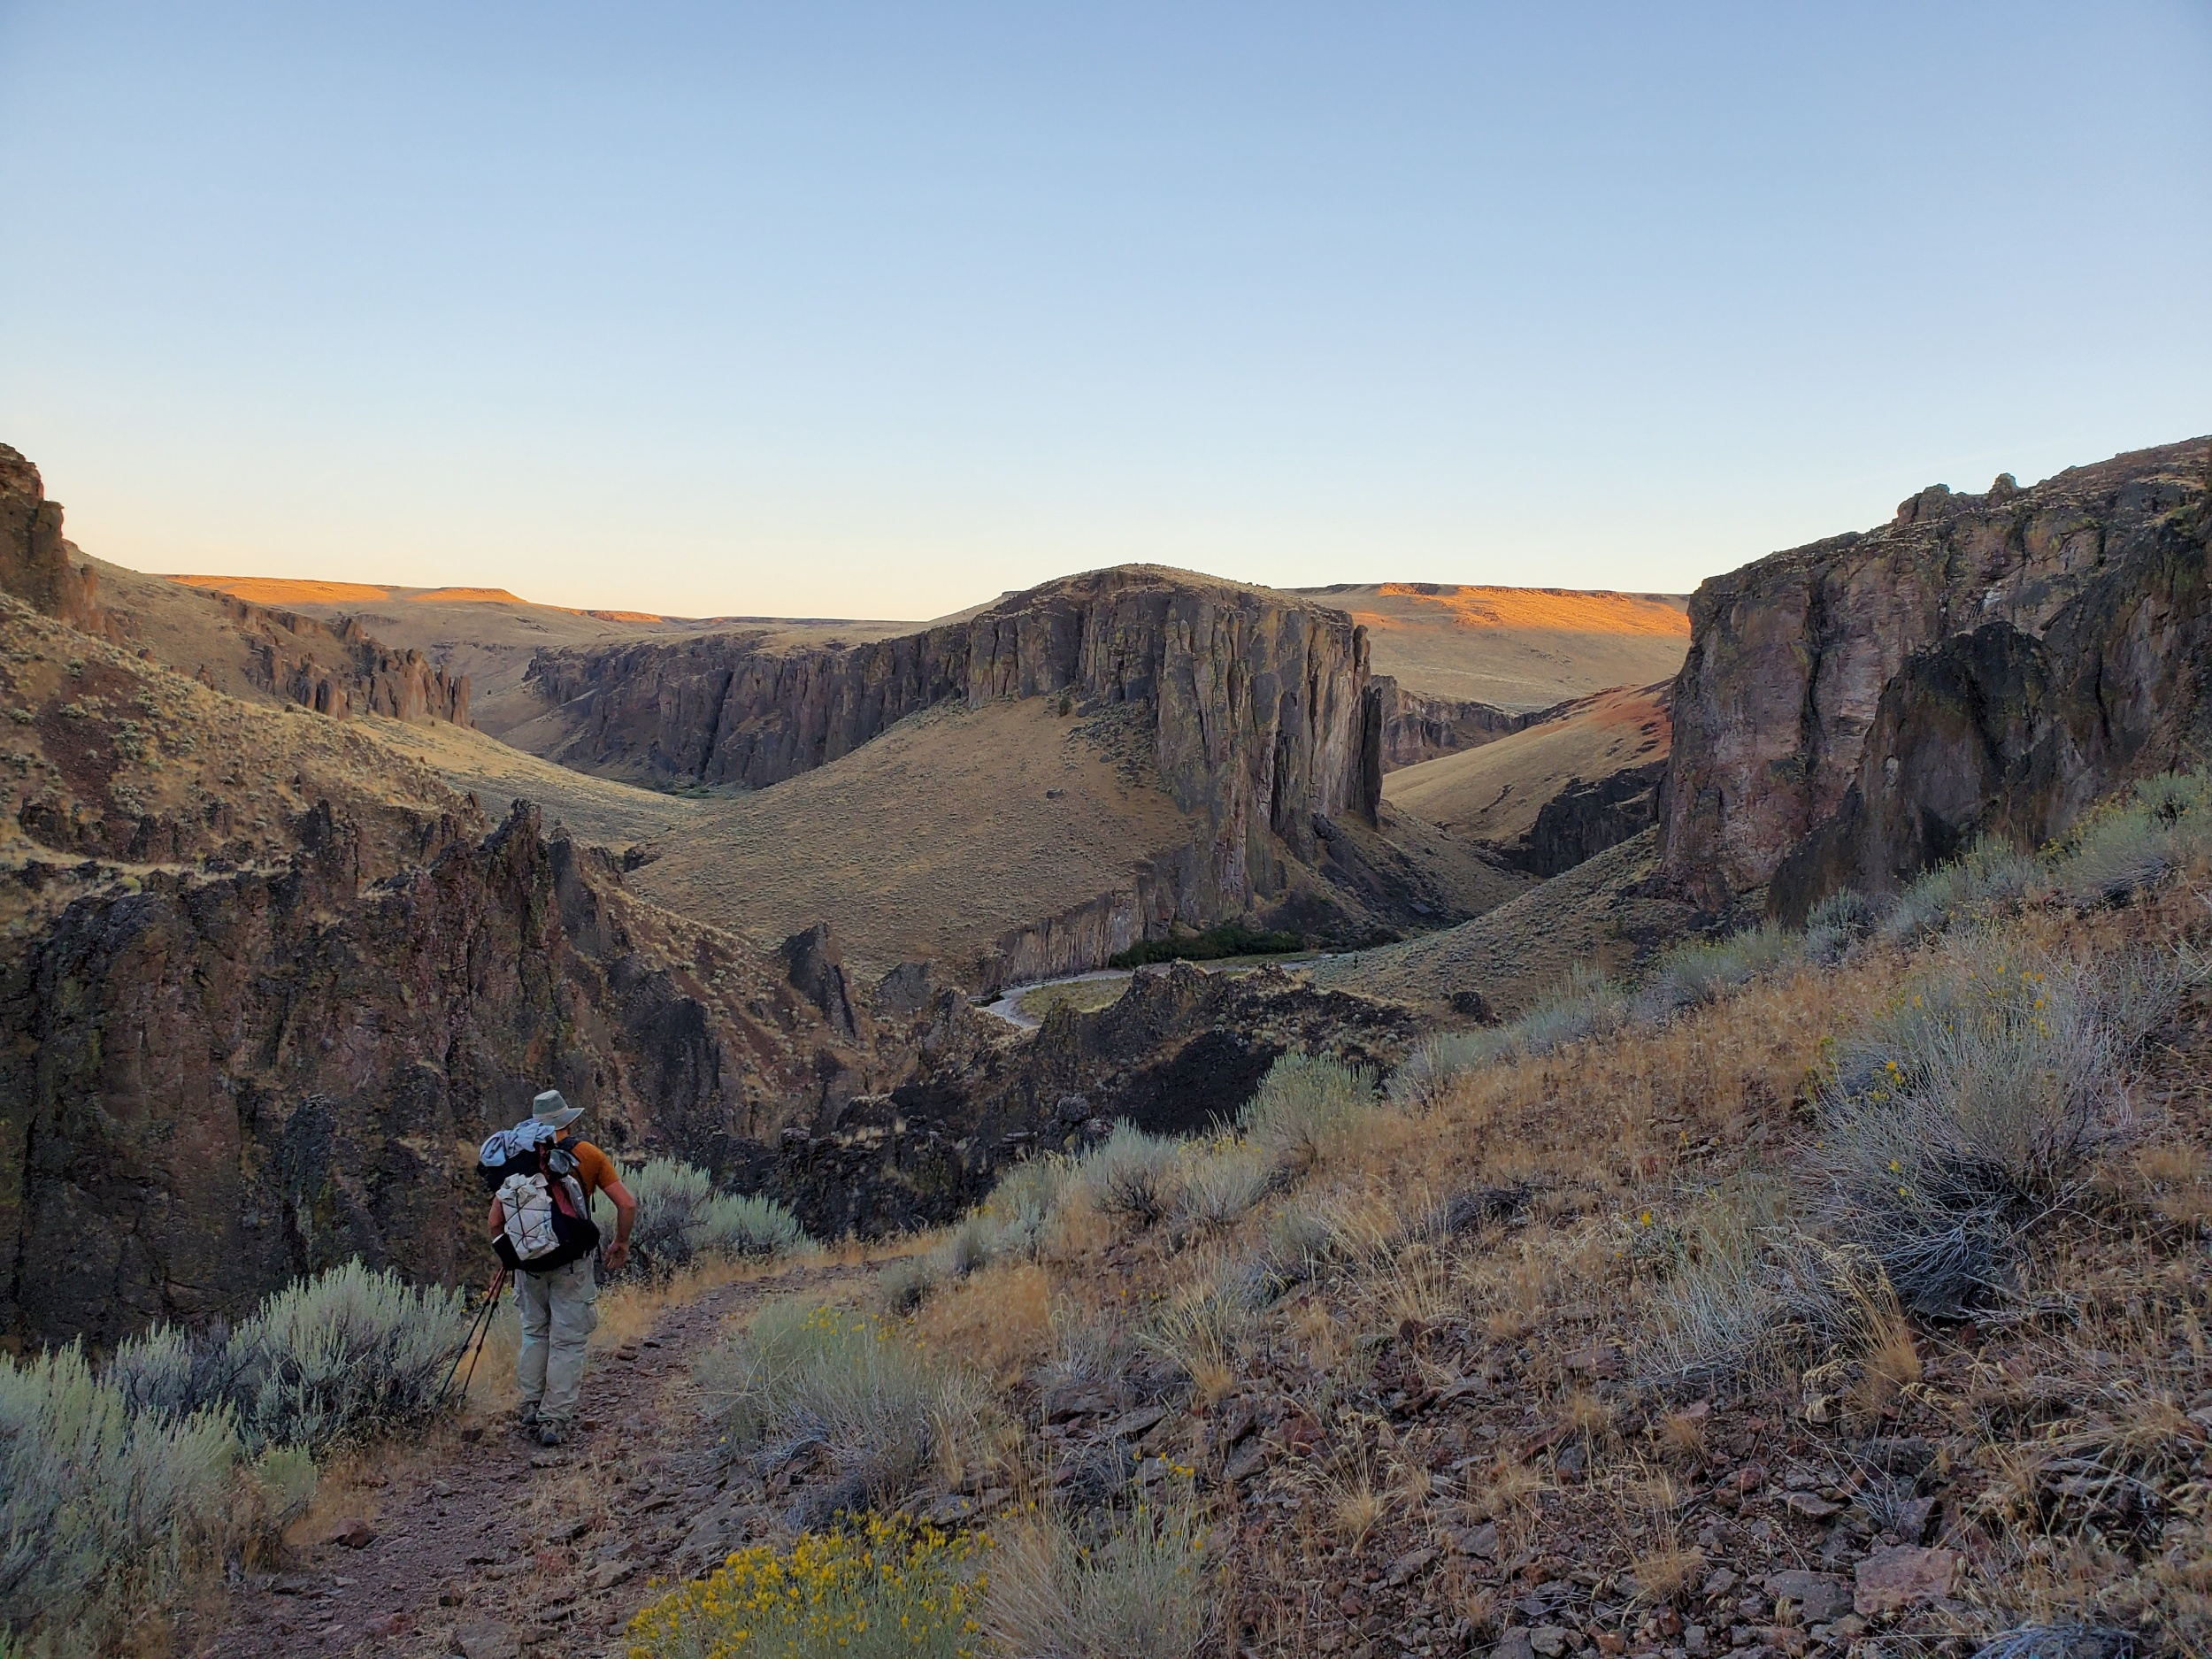 Heading down to the Owyhee river